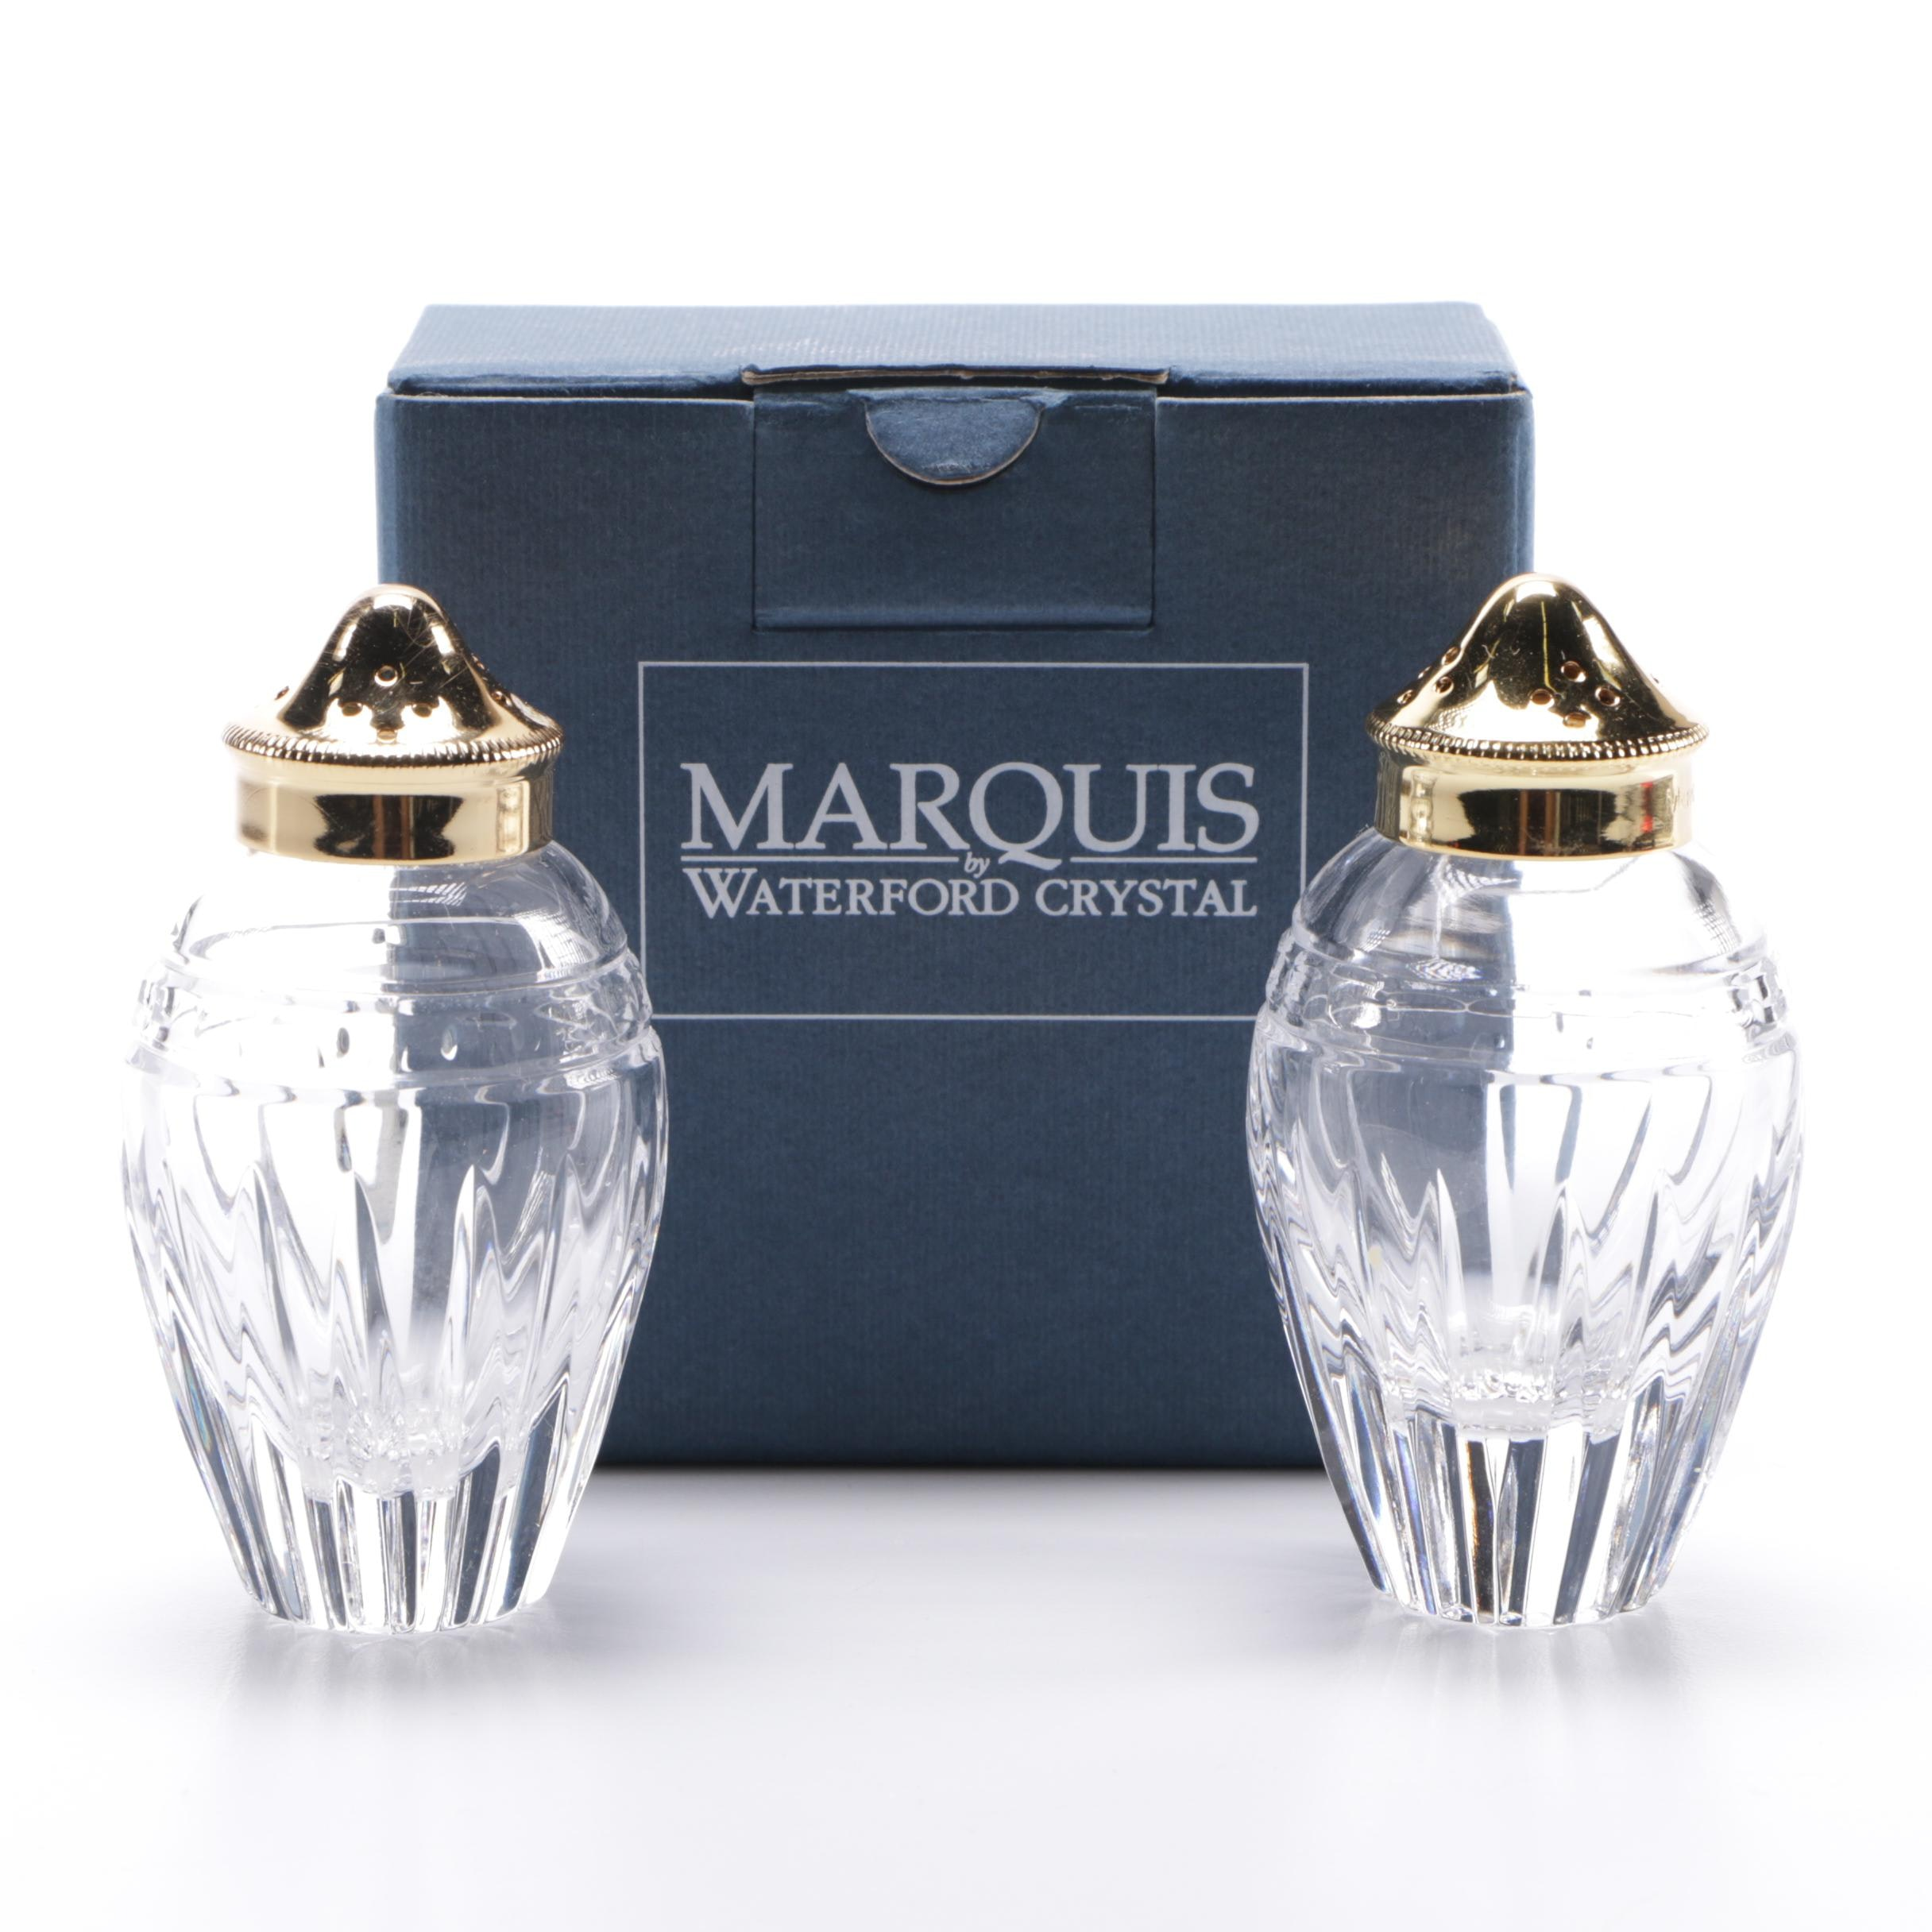 Marquis by Waterford Crystal Salt and Pepper Shakers